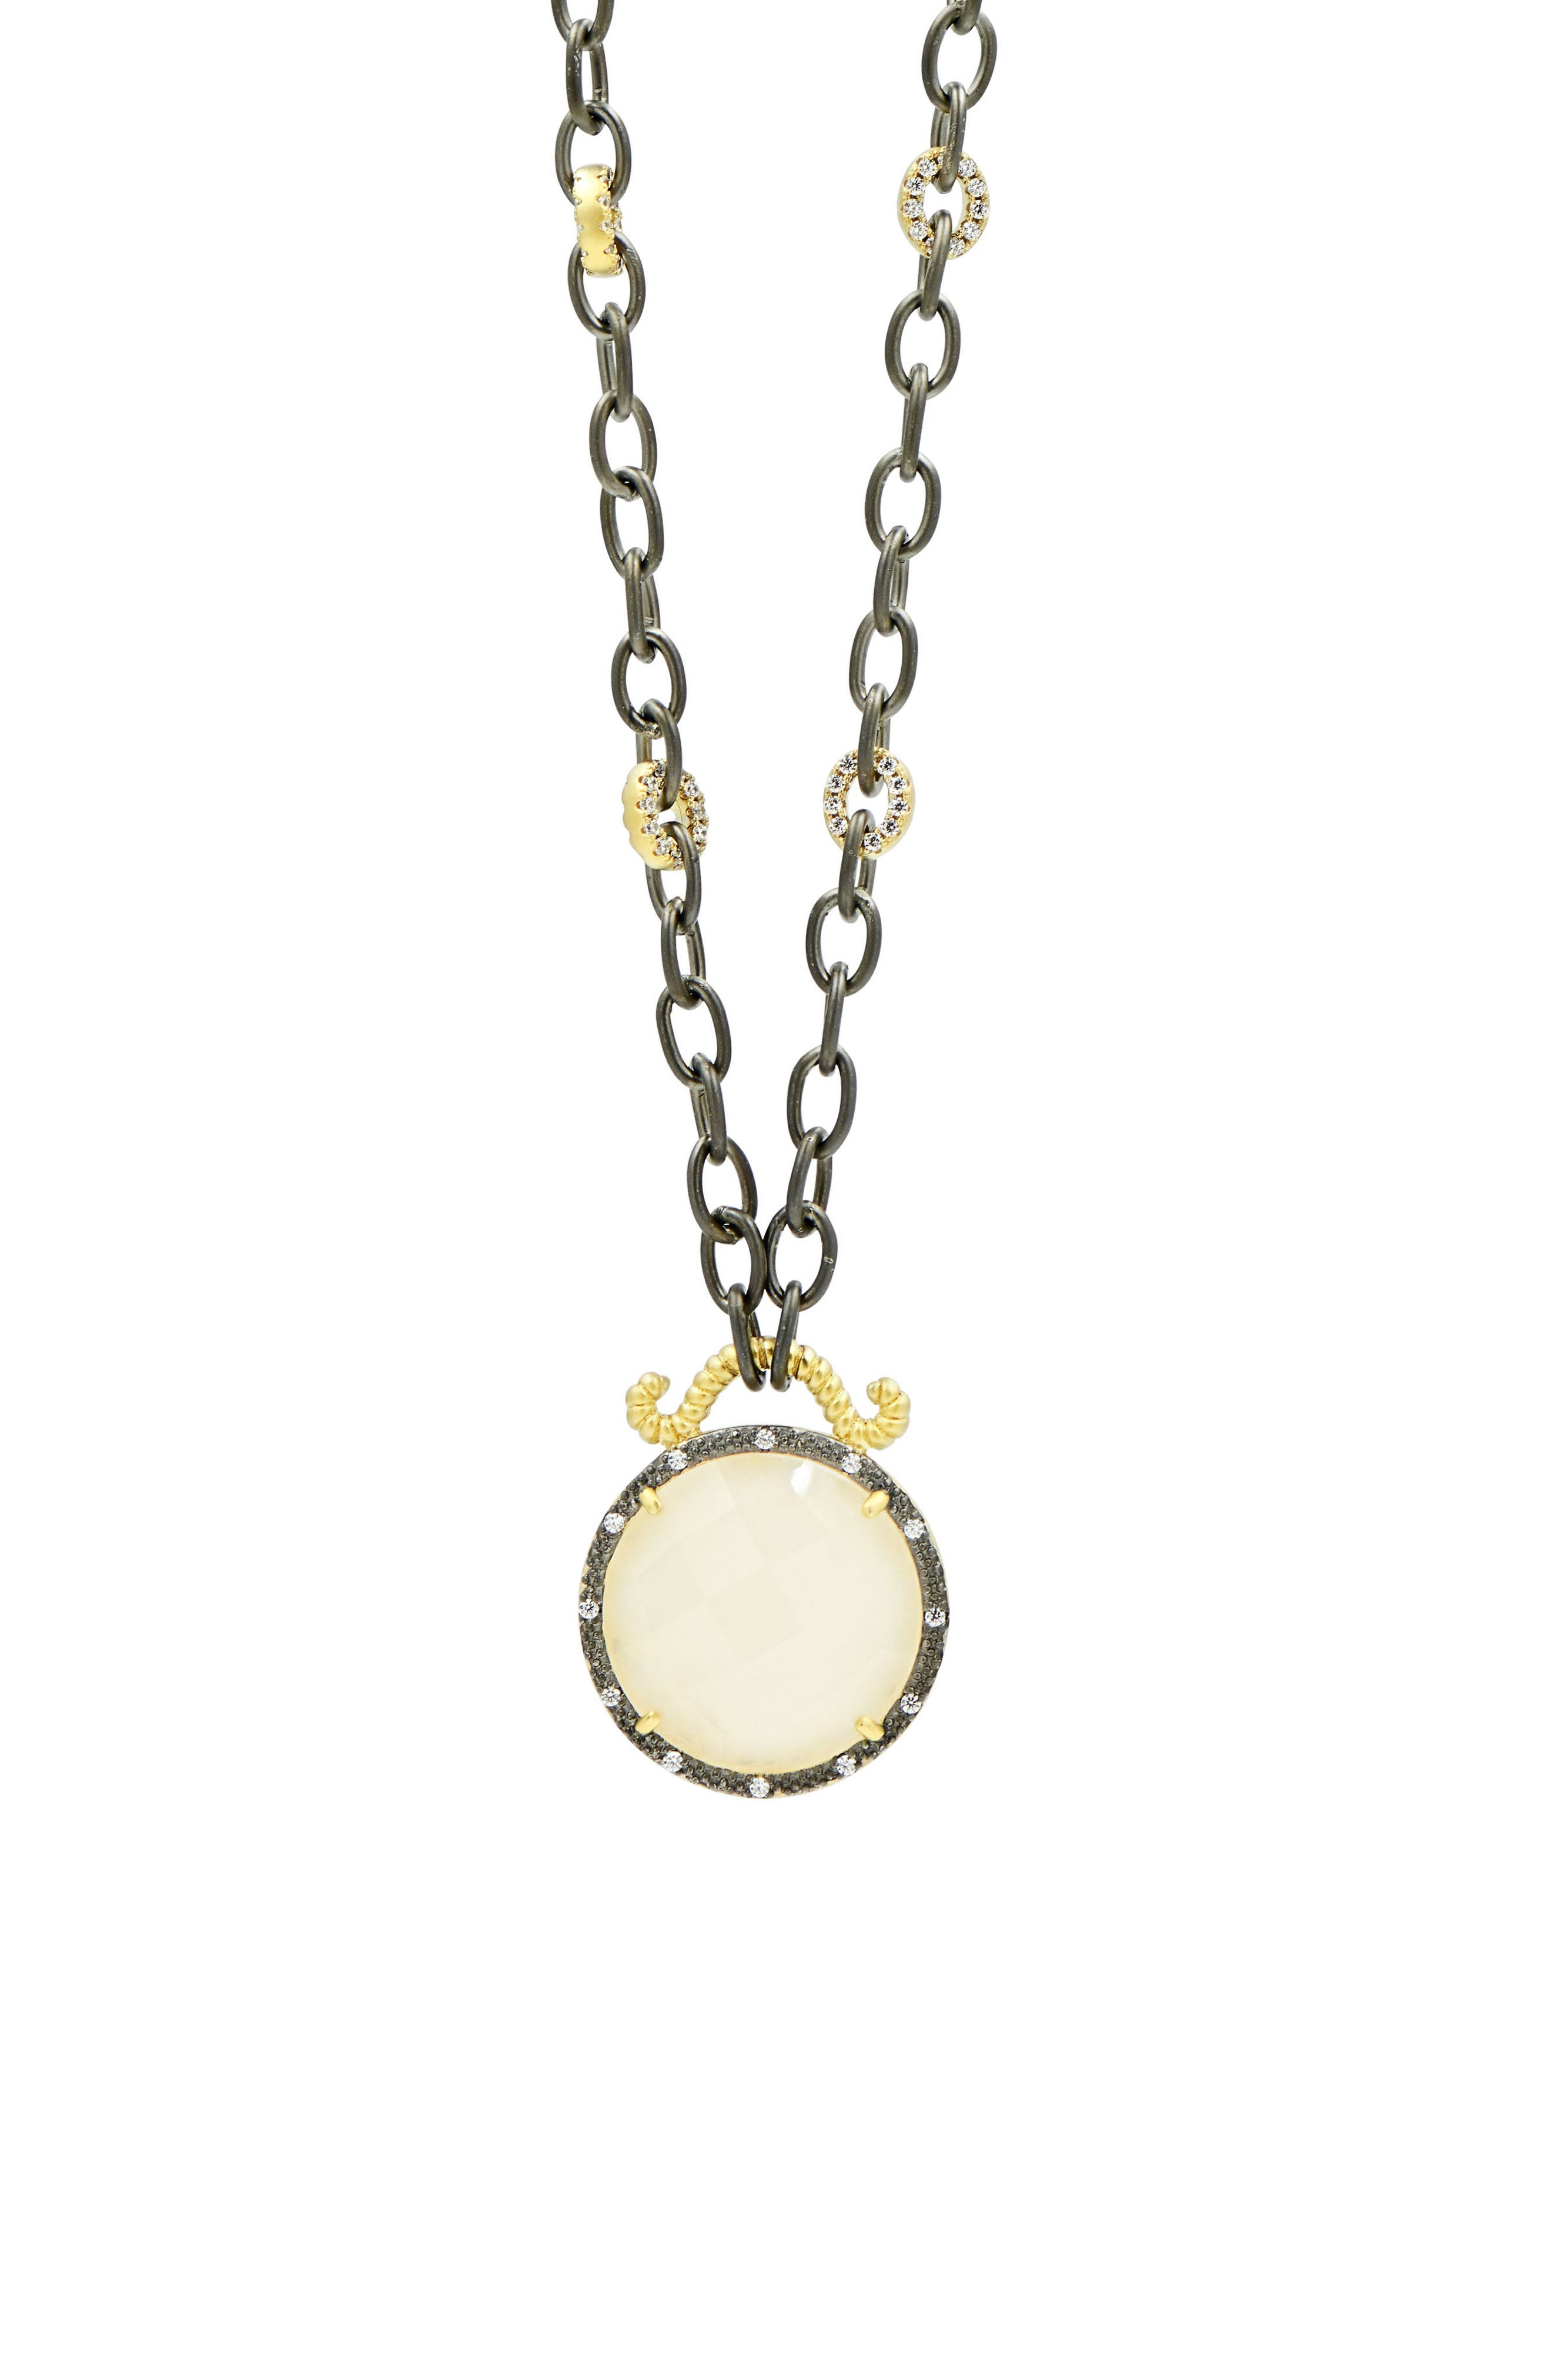 Gilded Cable Reversible Pendant Necklace,                             Alternate thumbnail 2, color,                             710